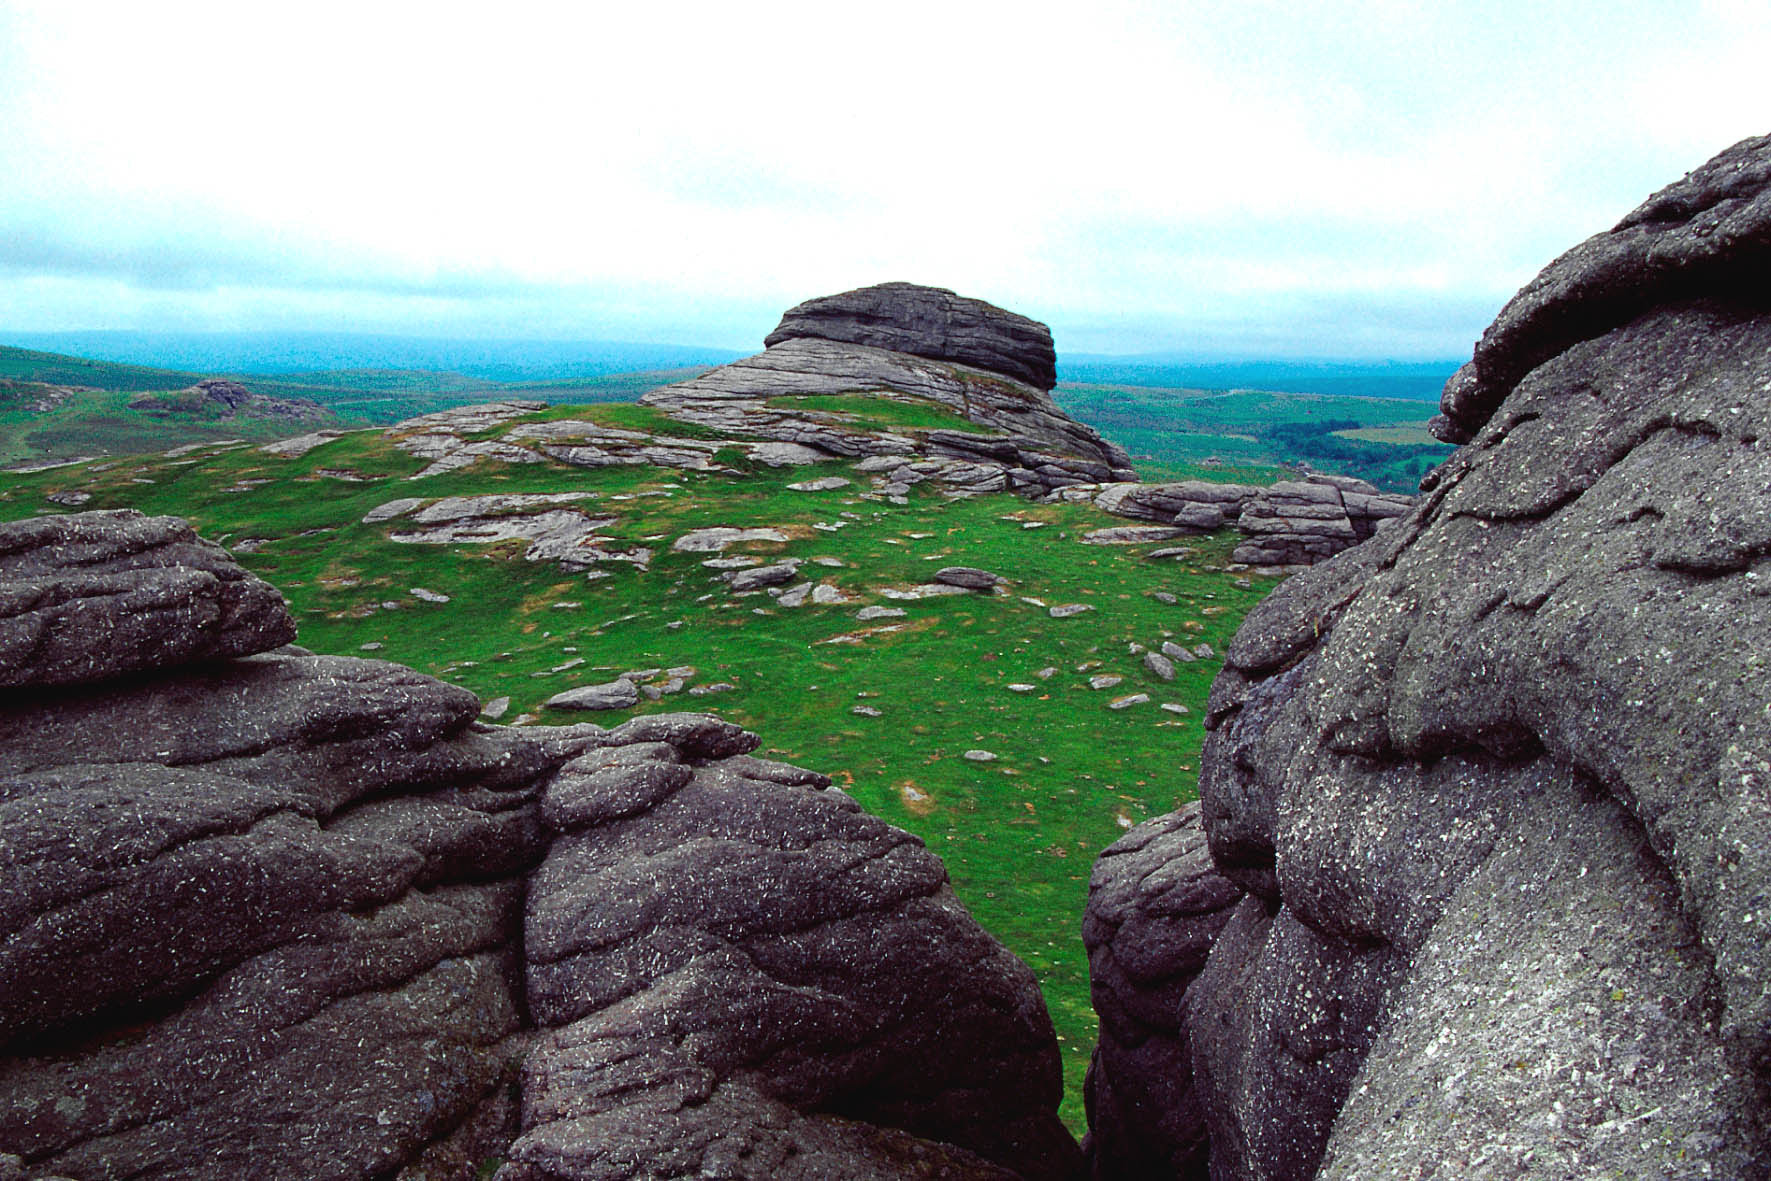 http://upload.wikimedia.org/wikipedia/commons/f/f3/Dartmoor_b.jpg